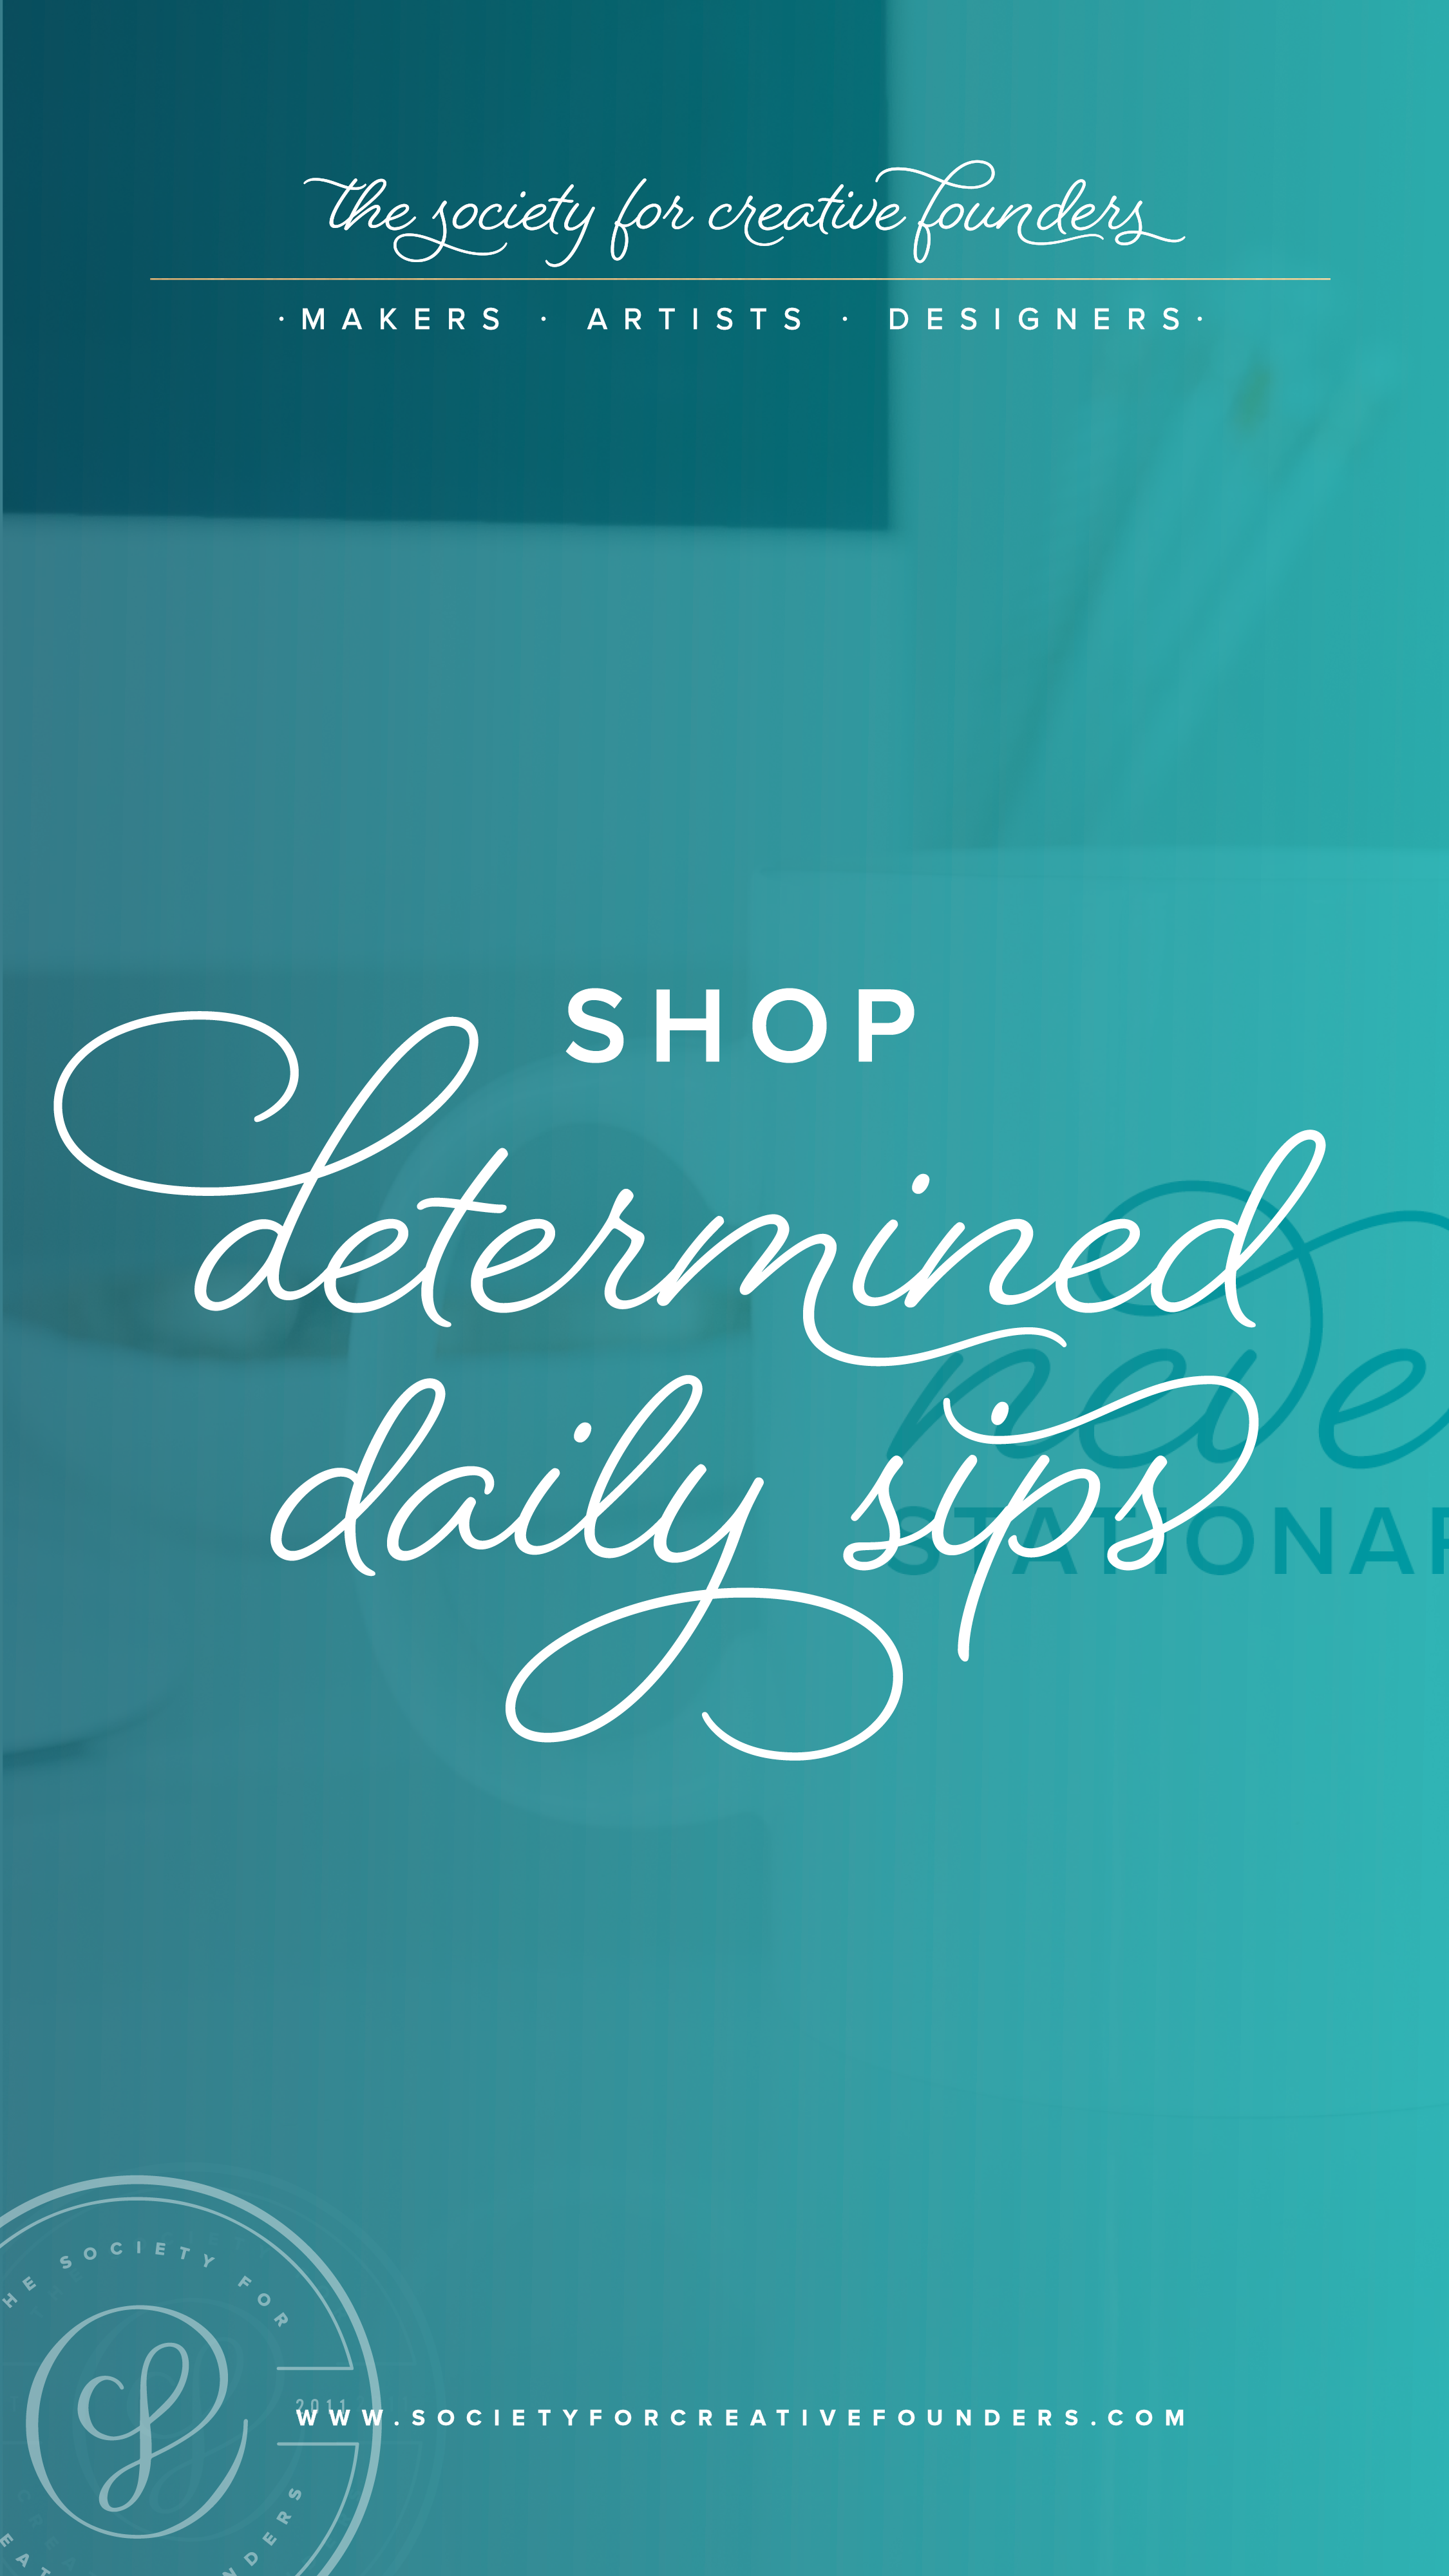 Creative Founders Shop - Determined Daily Sips